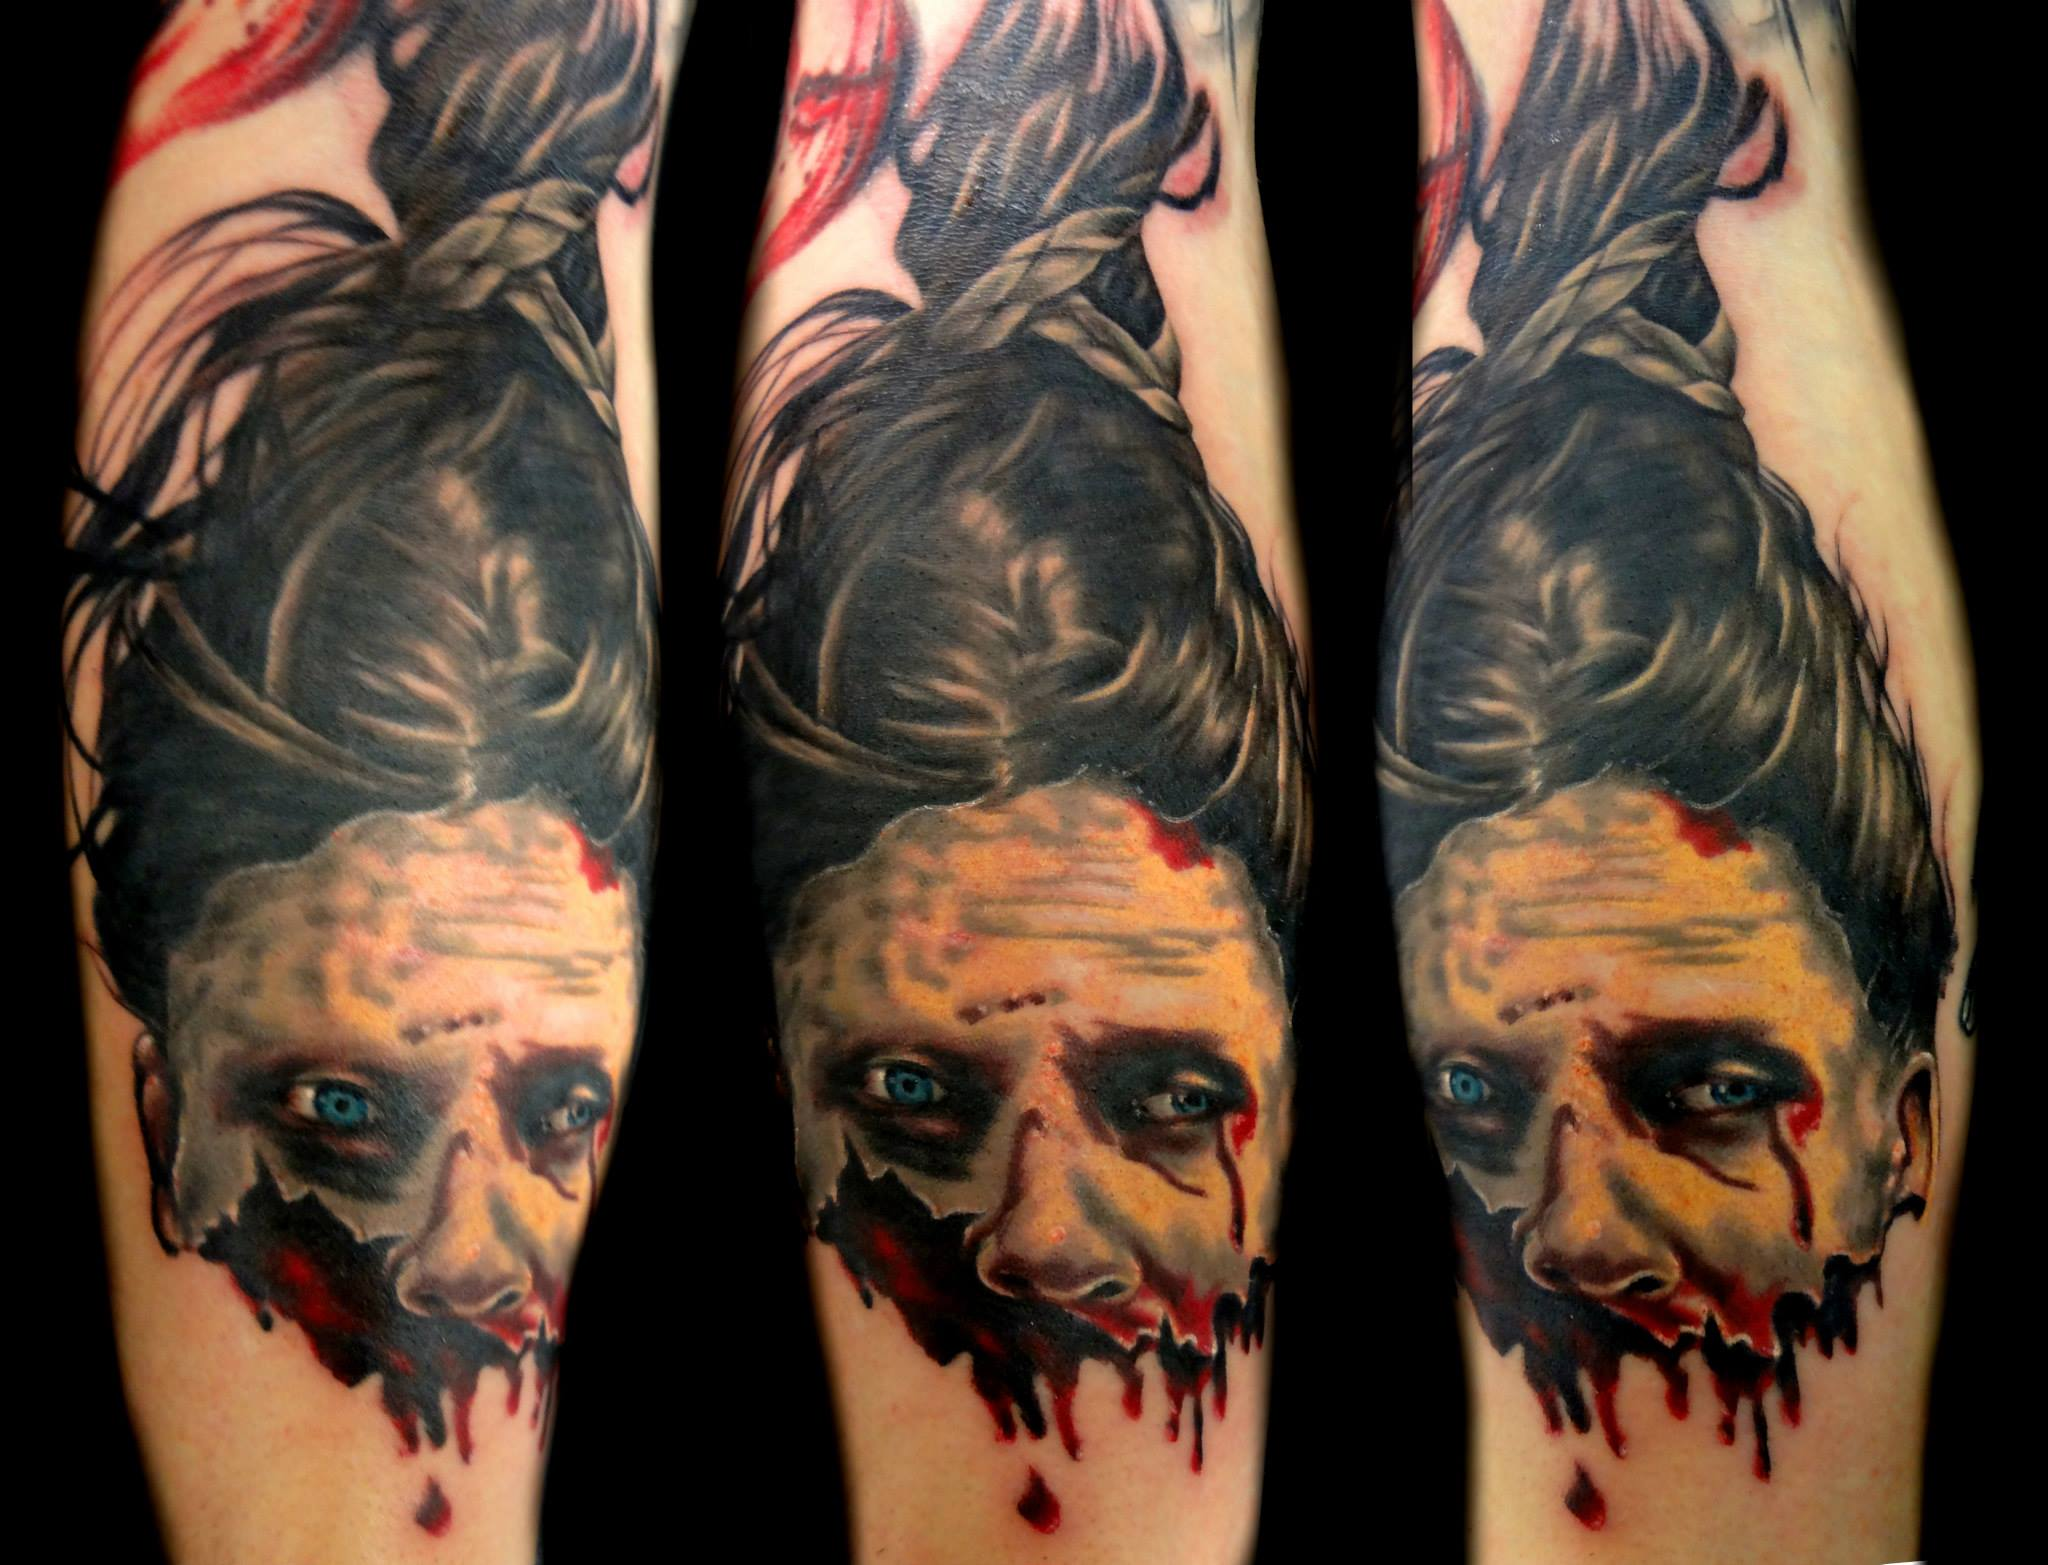 gore - right forearm